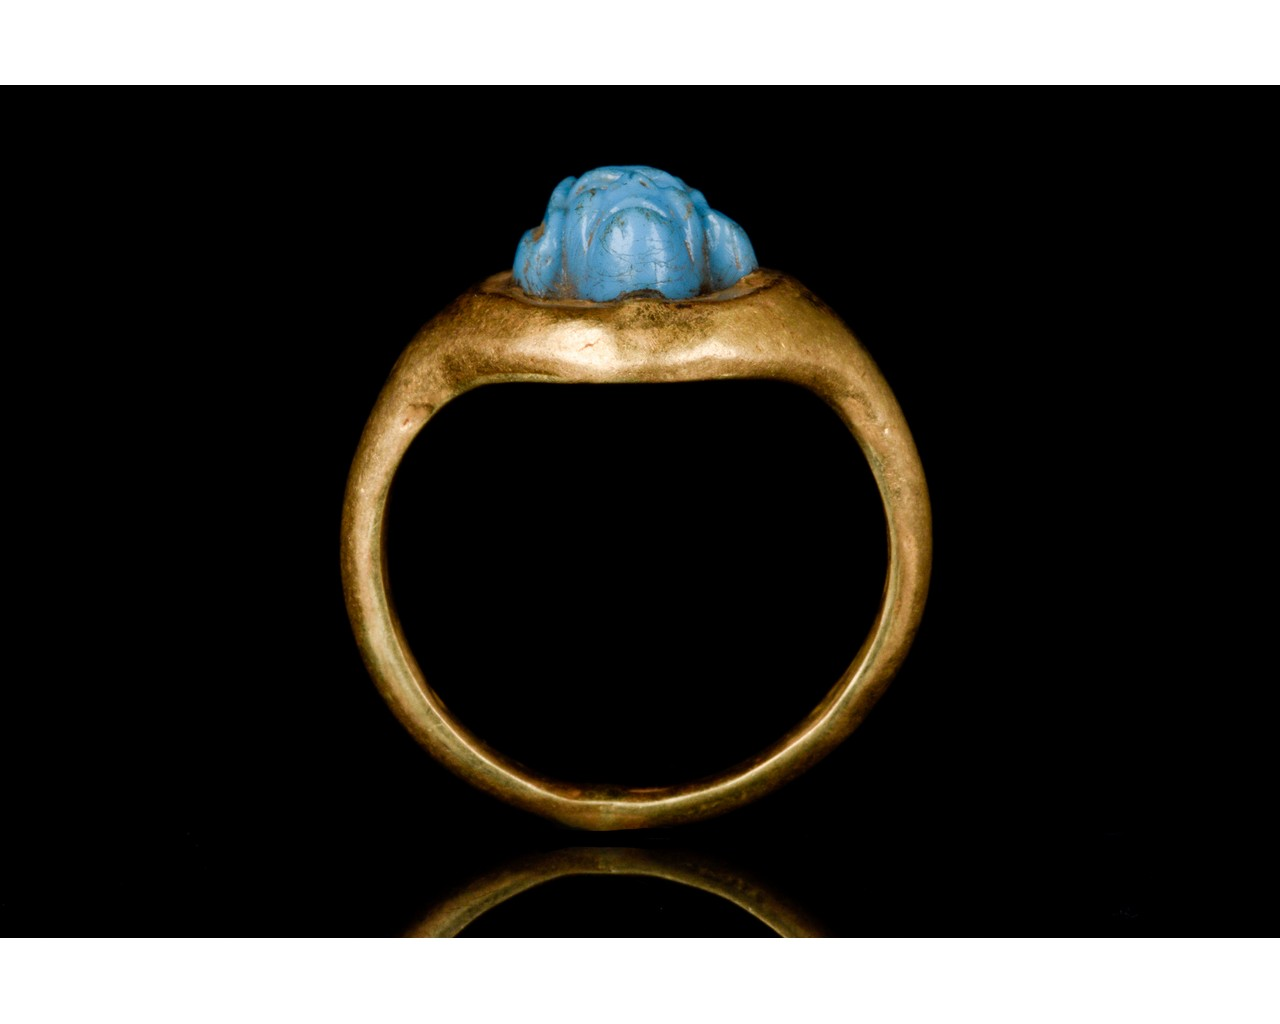 PHOENICIAN FAIENCE GODDESS HEAD IN A GOLD RING - Image 5 of 6